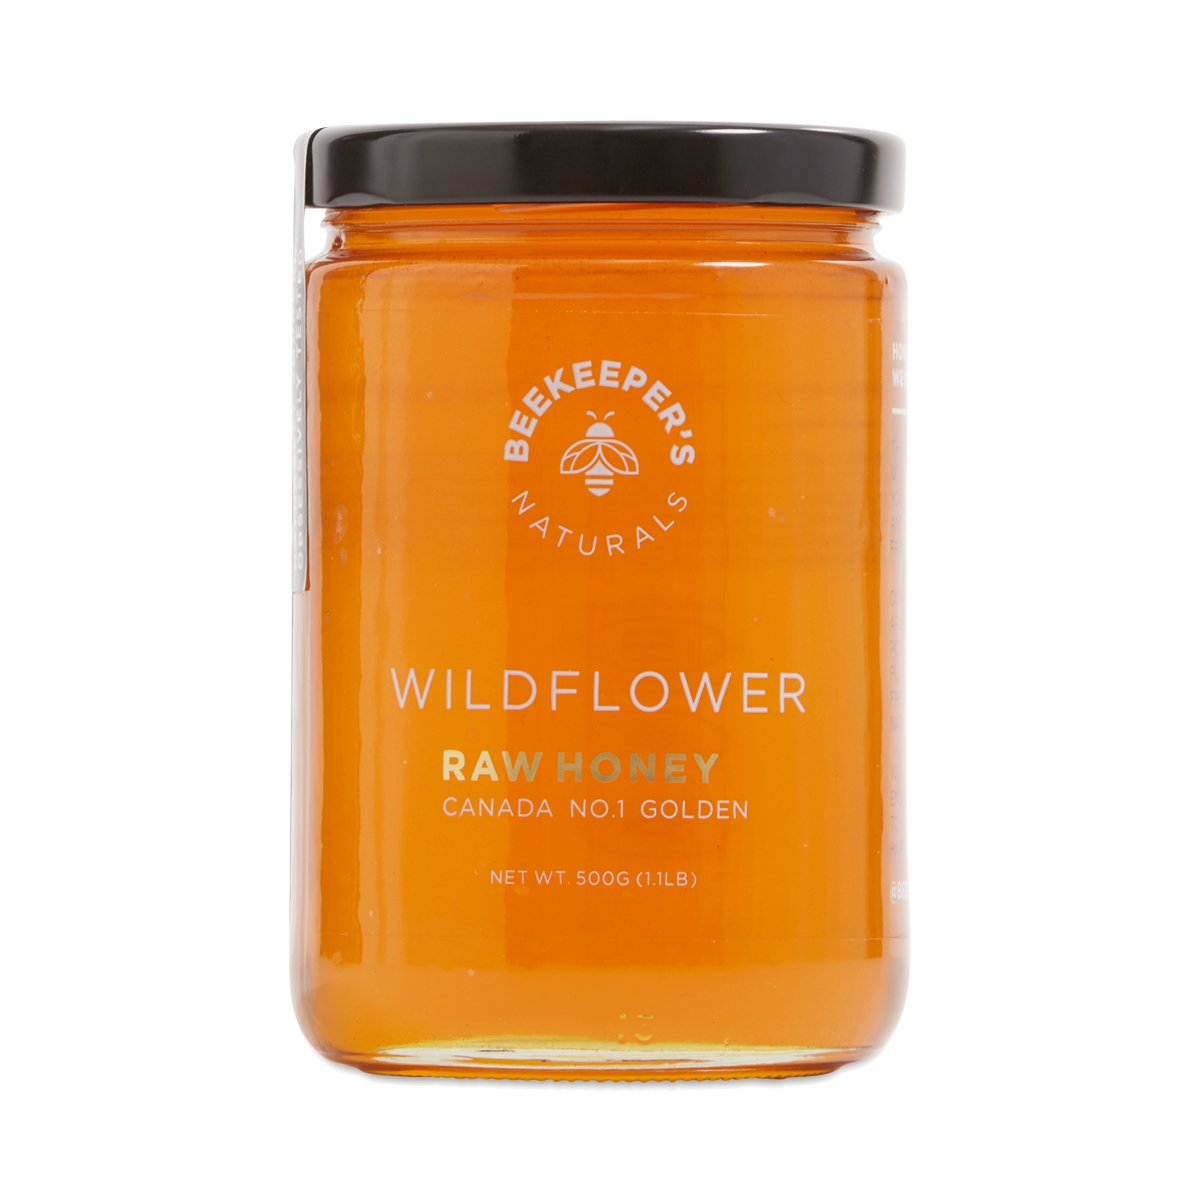 Beekeeper's Naturals Wildflower Raw Honey 500g jar